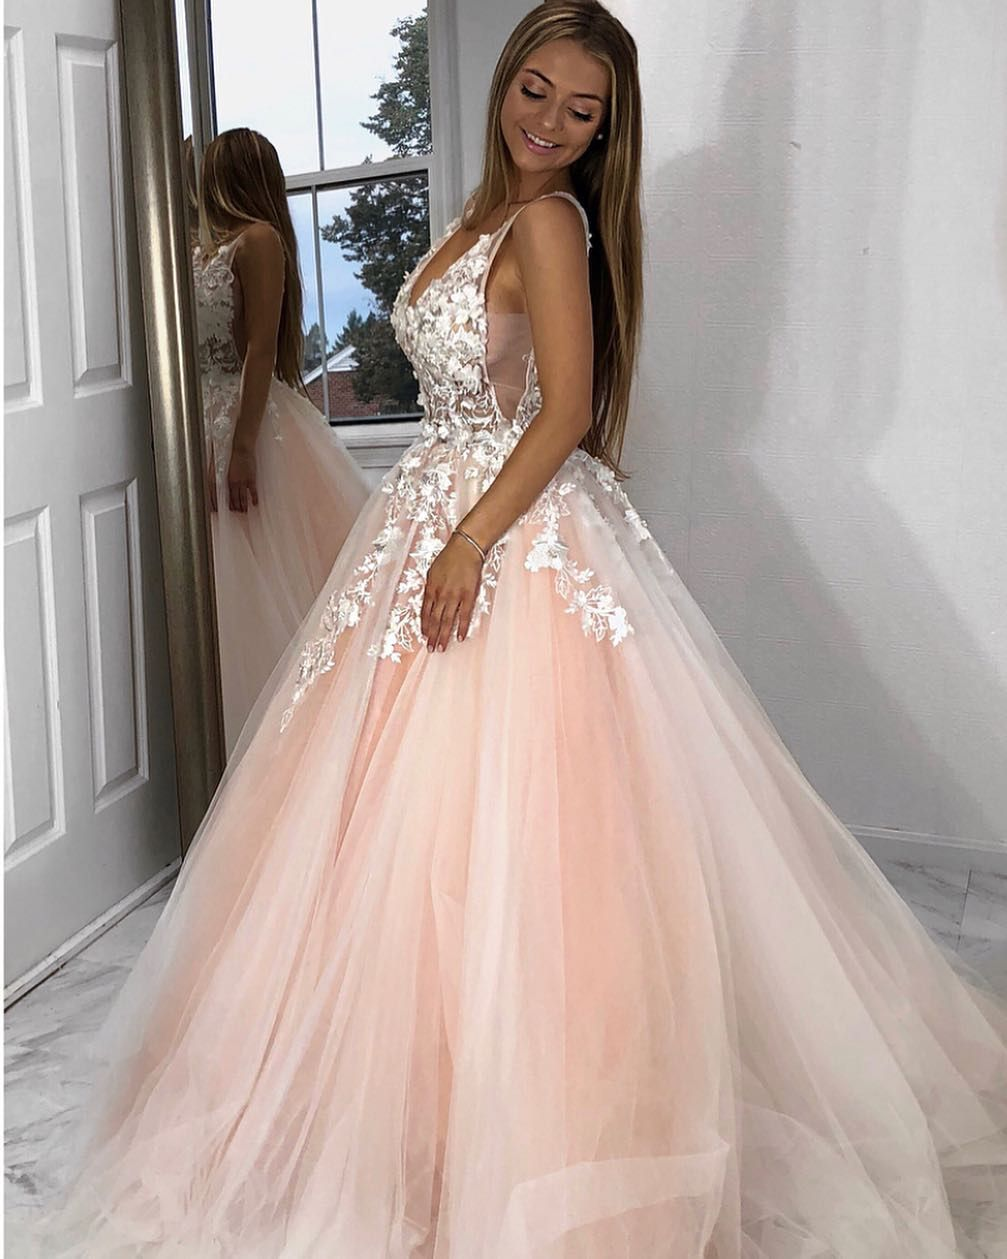 Blush pink ball gown prom dress with ivory lace applique. Prom Dresses 2019 9b3badb3dc77